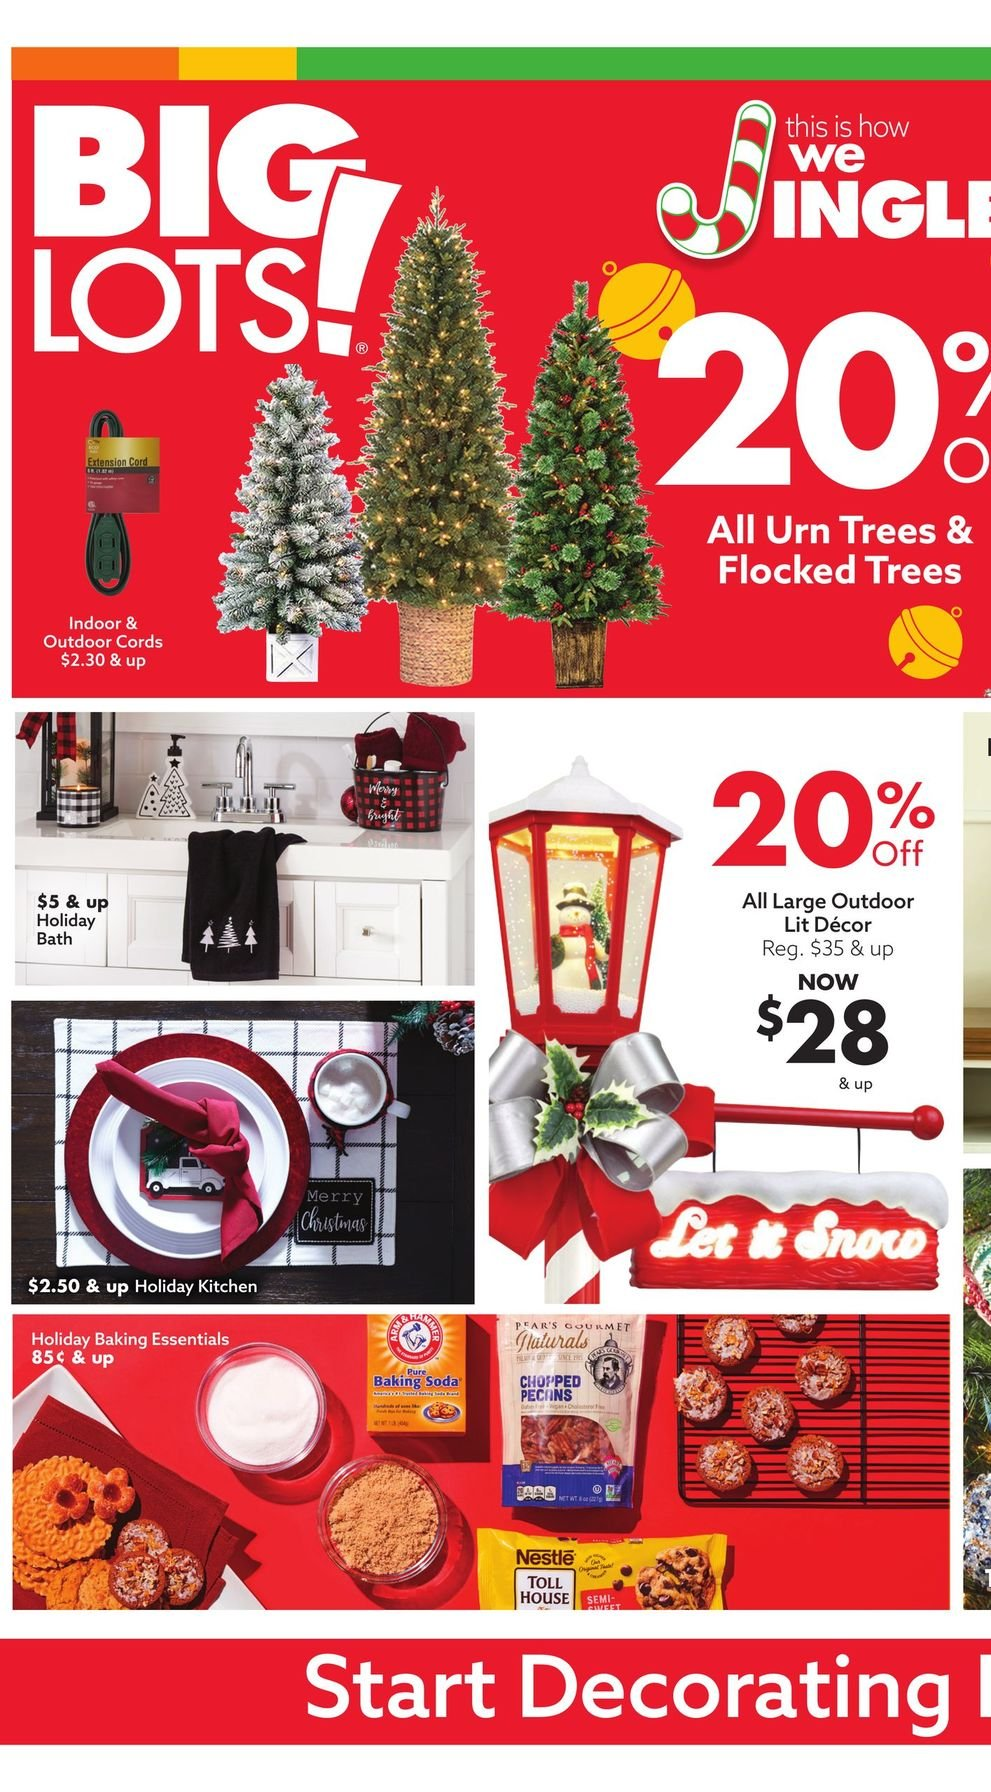 Big Lots Weekly October 24 - 31, 2020 Page 3